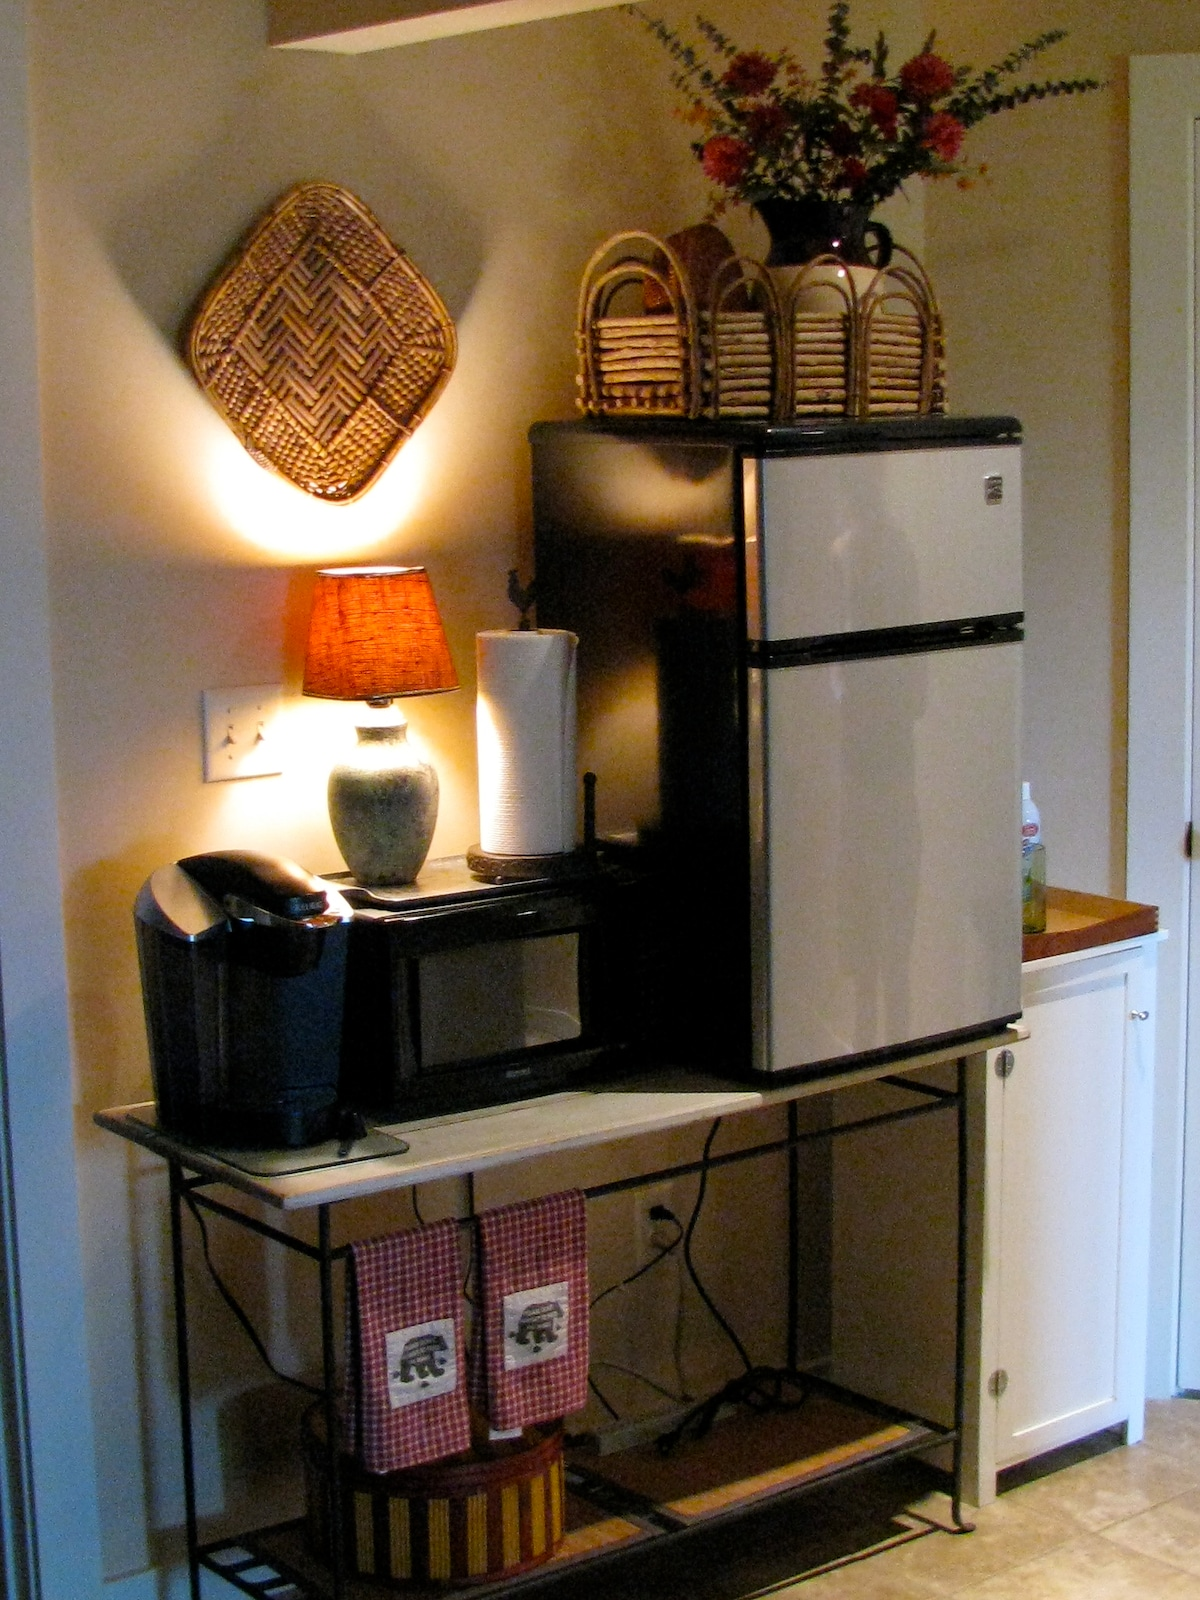 MINI FRIDGE W/FREEZER,MICROWAVE AND KURIG COFFEE MAKER(BRING YOUR FAORITE BREW)